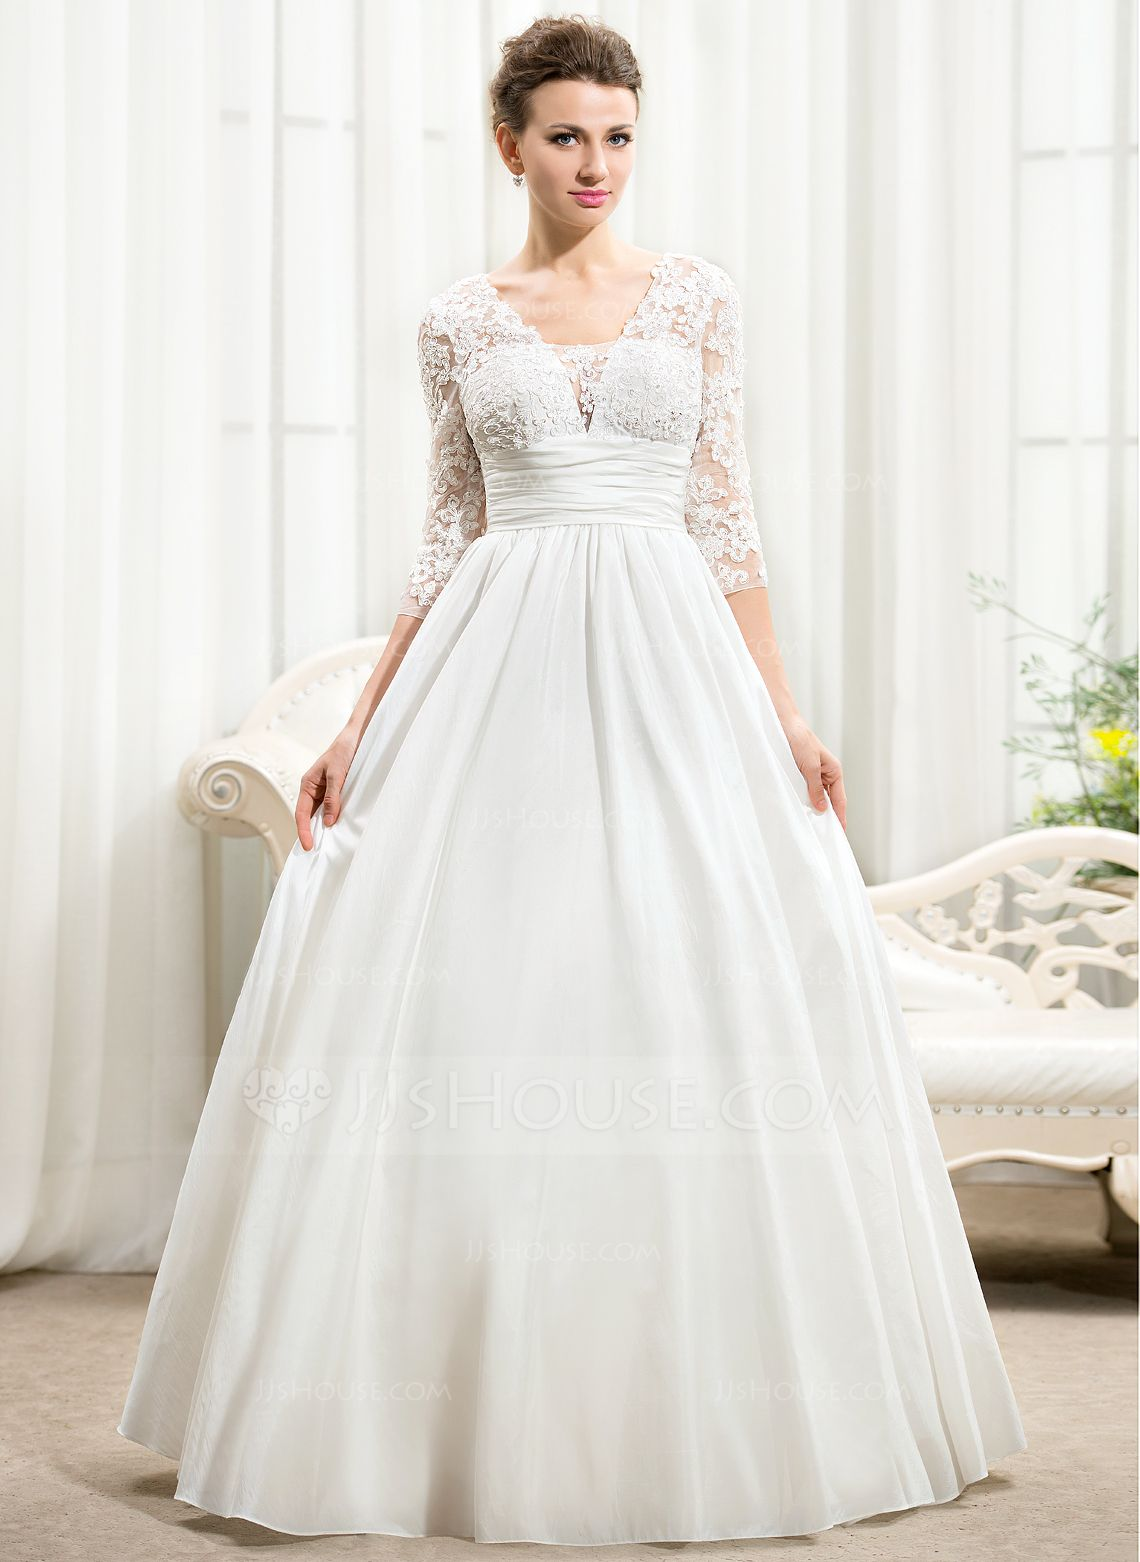 Alineprincess vneck floorlength taffeta lace wedding dress with